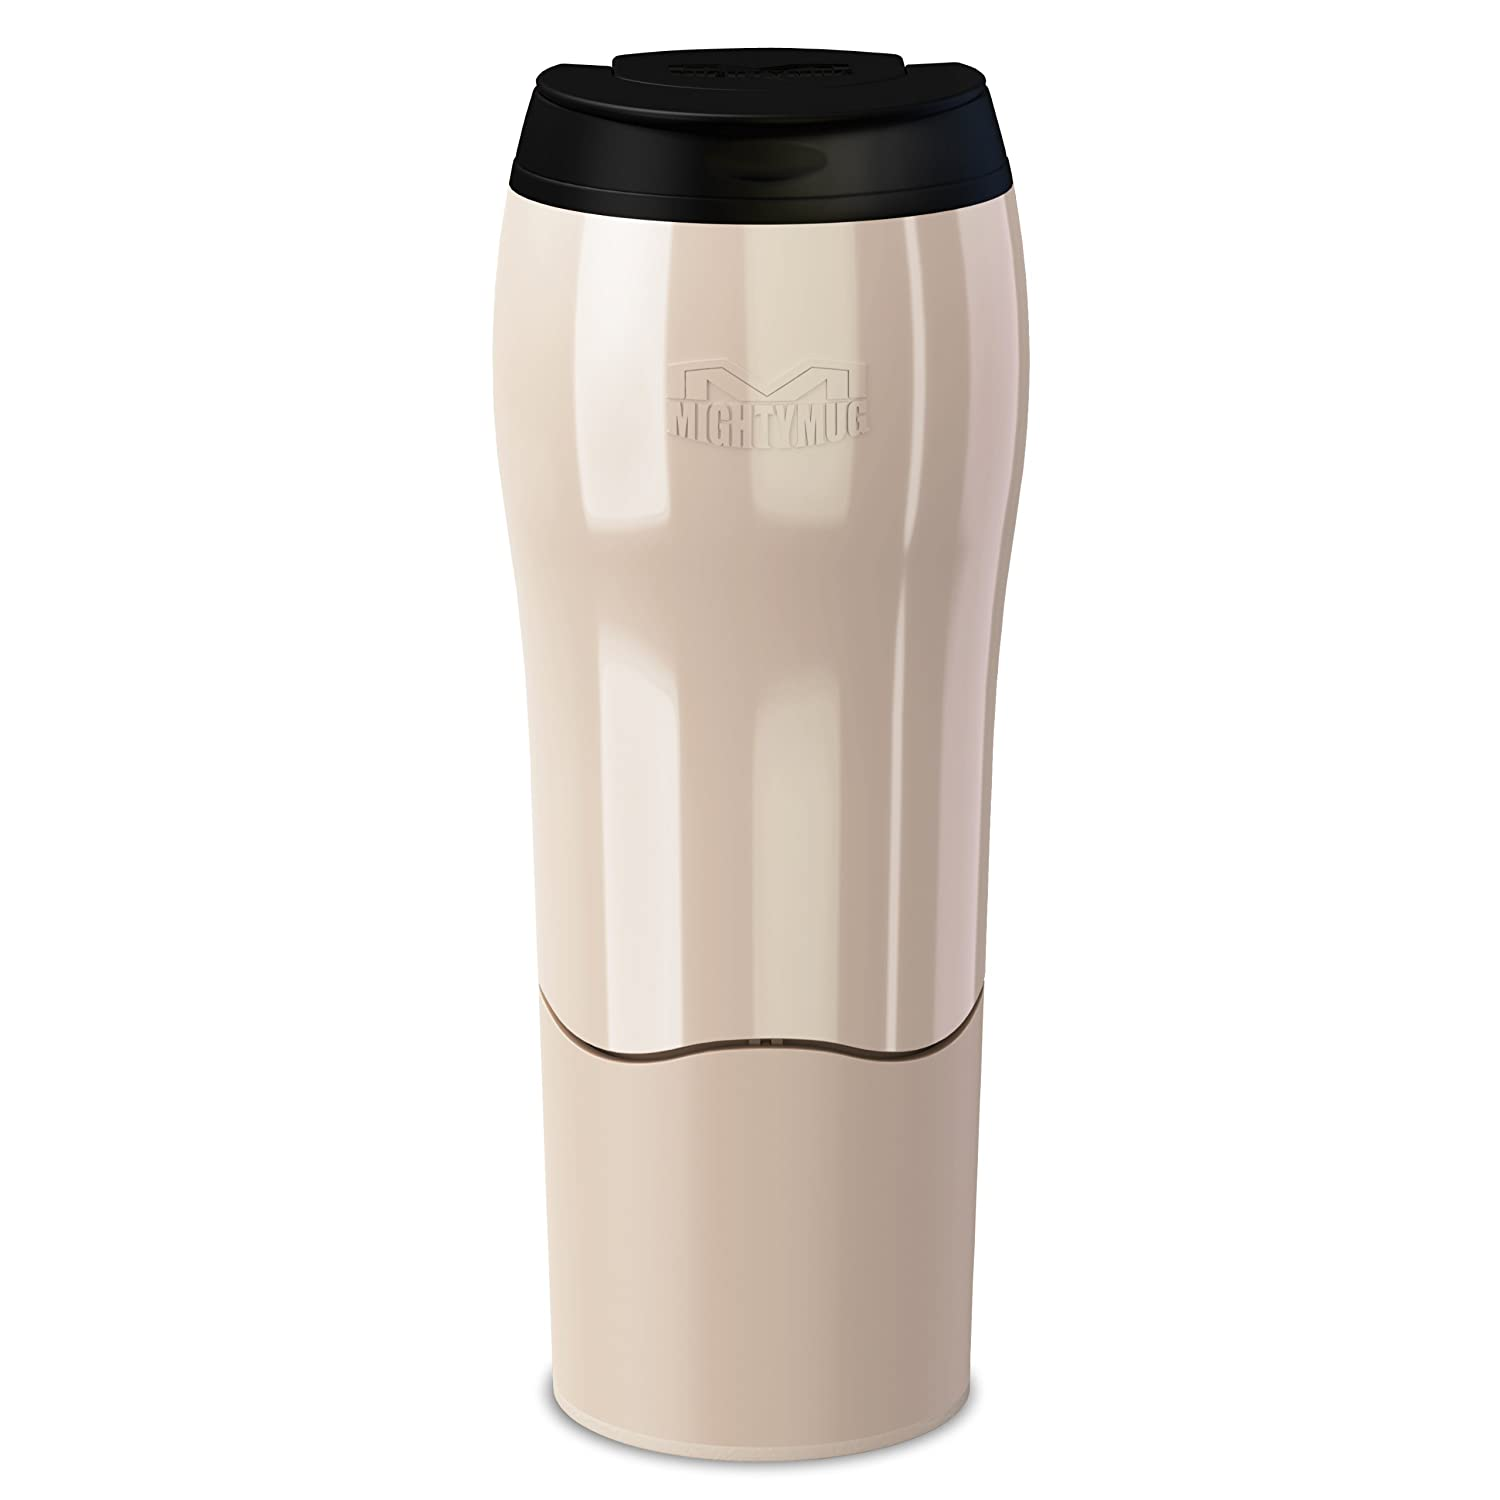 Mighty Mug Go - The Travel Mug That Won't Fall Over (0.47 Litre), Pearl 17920226